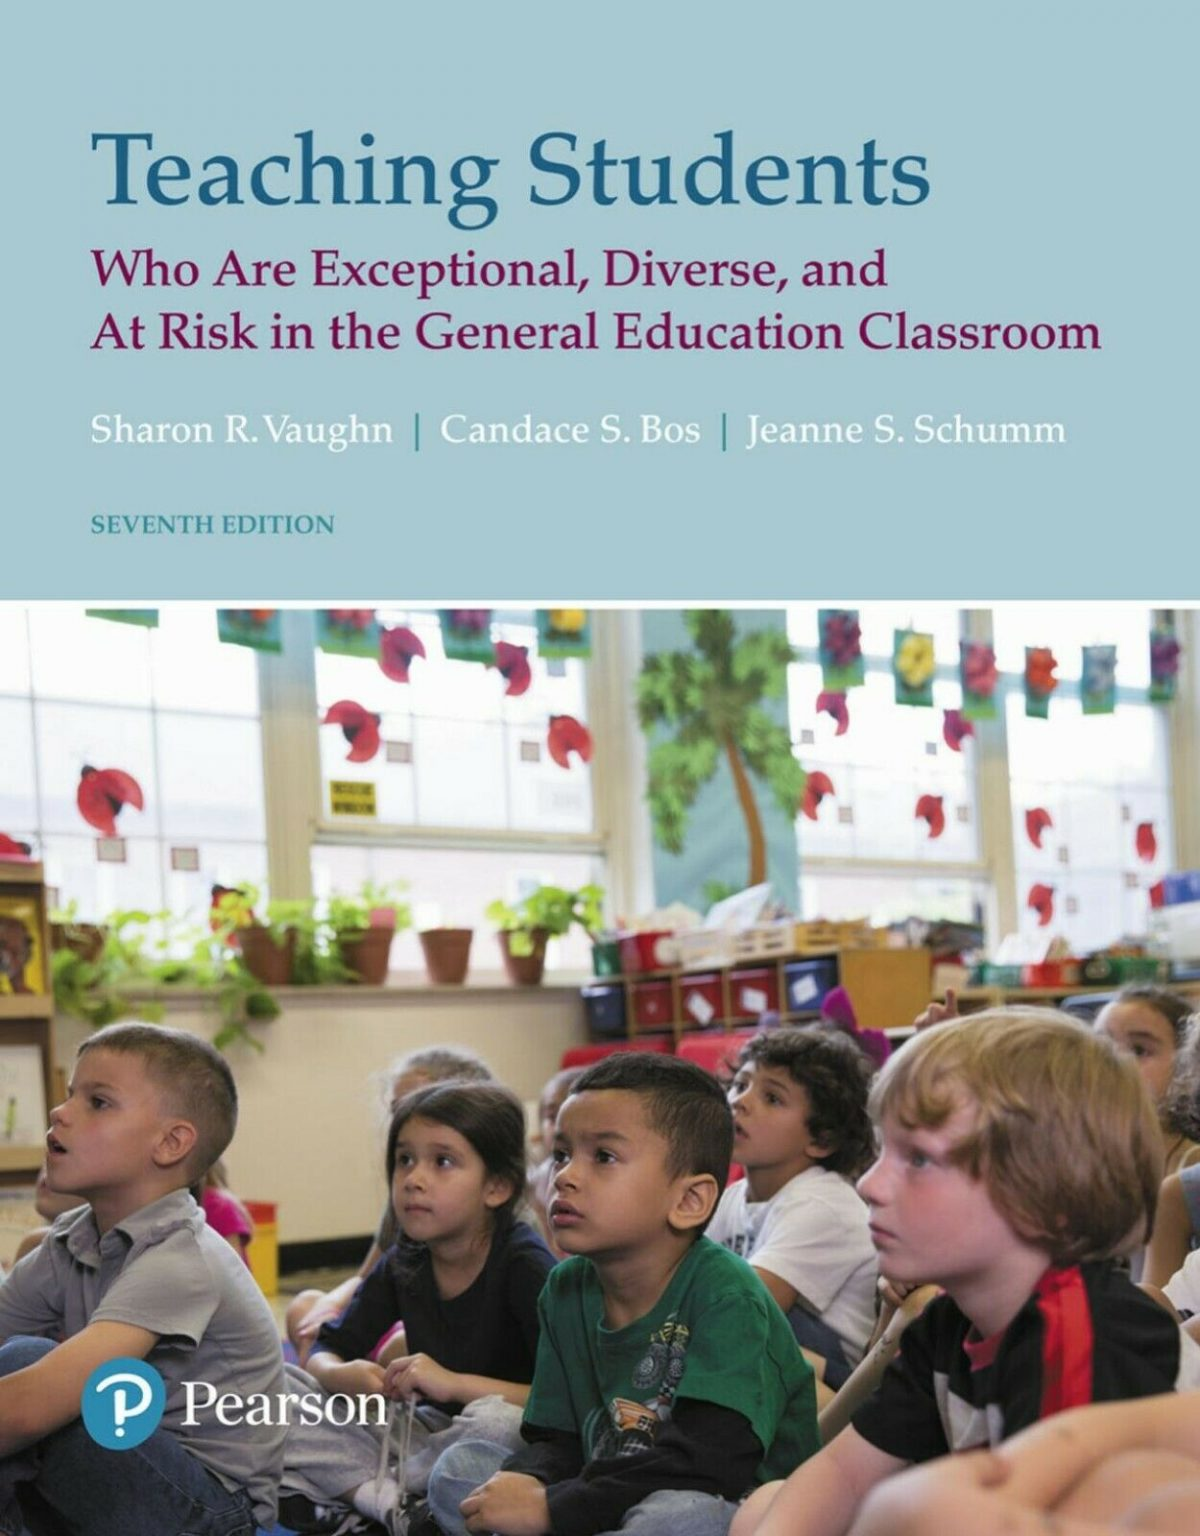 Teaching Students Who are Exceptional Diverse and At Risk General Education